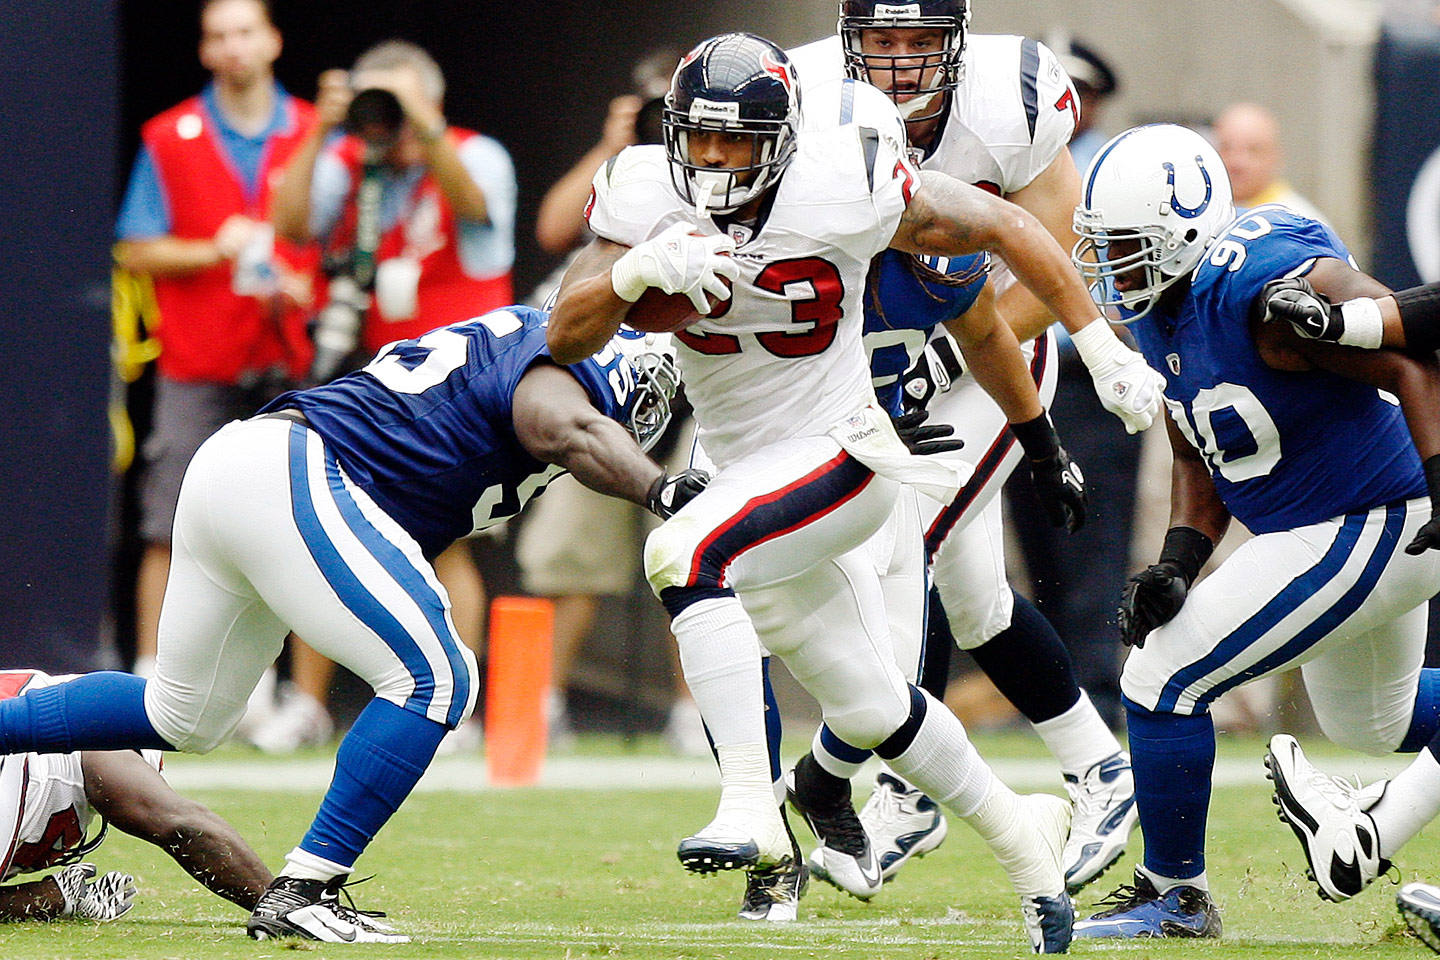 2. Surprise Search - Arian Foster